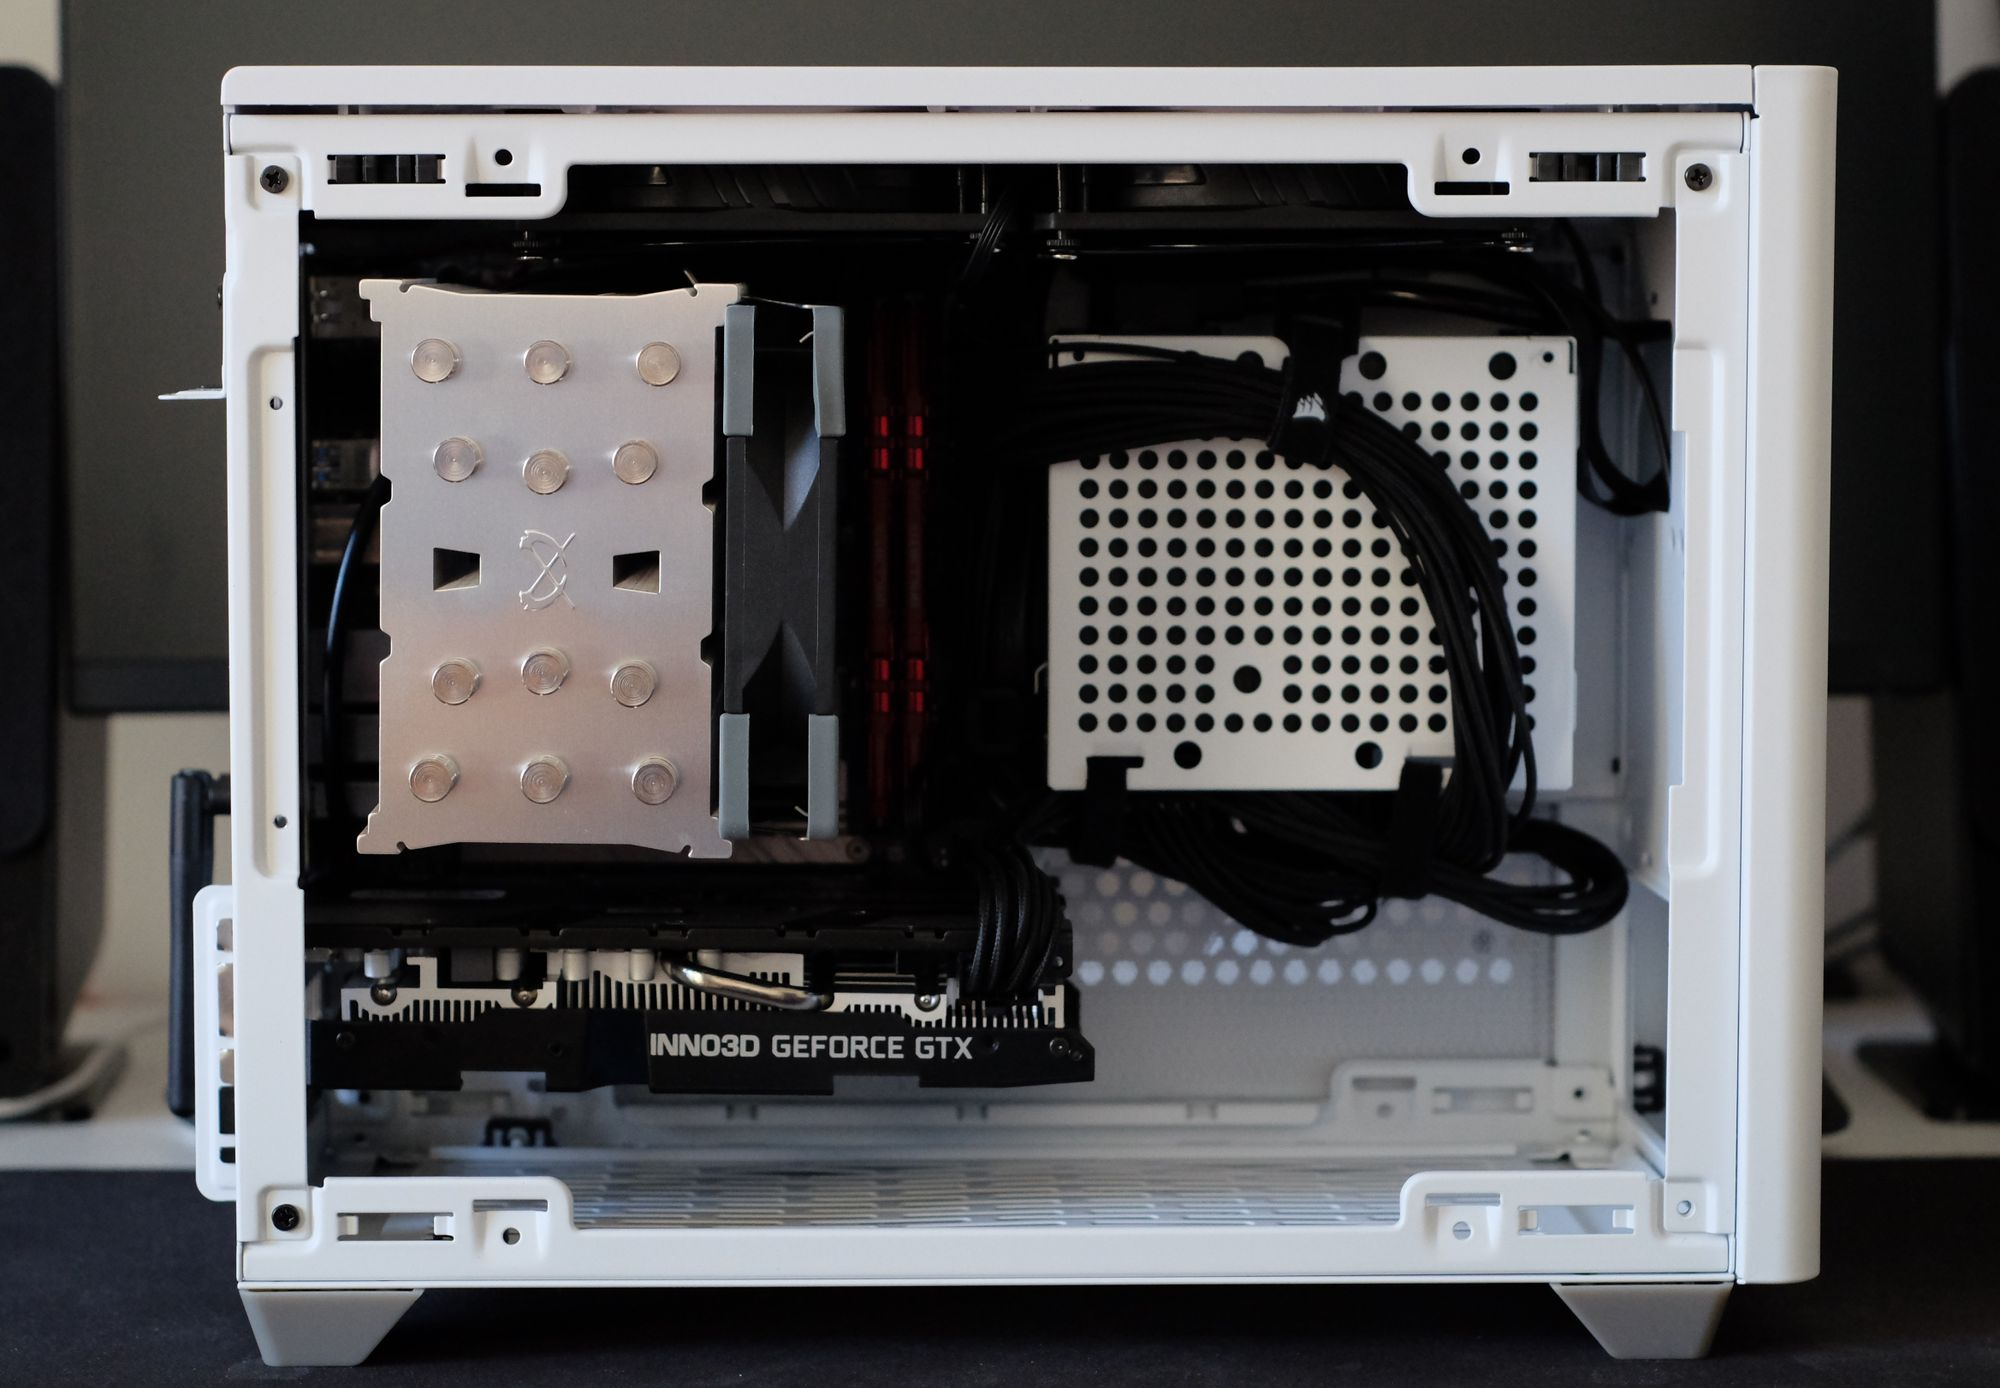 An open white computer case (CoolerMaster NR200), which shows a big CPU cooler, and a graphics card from Inno3D